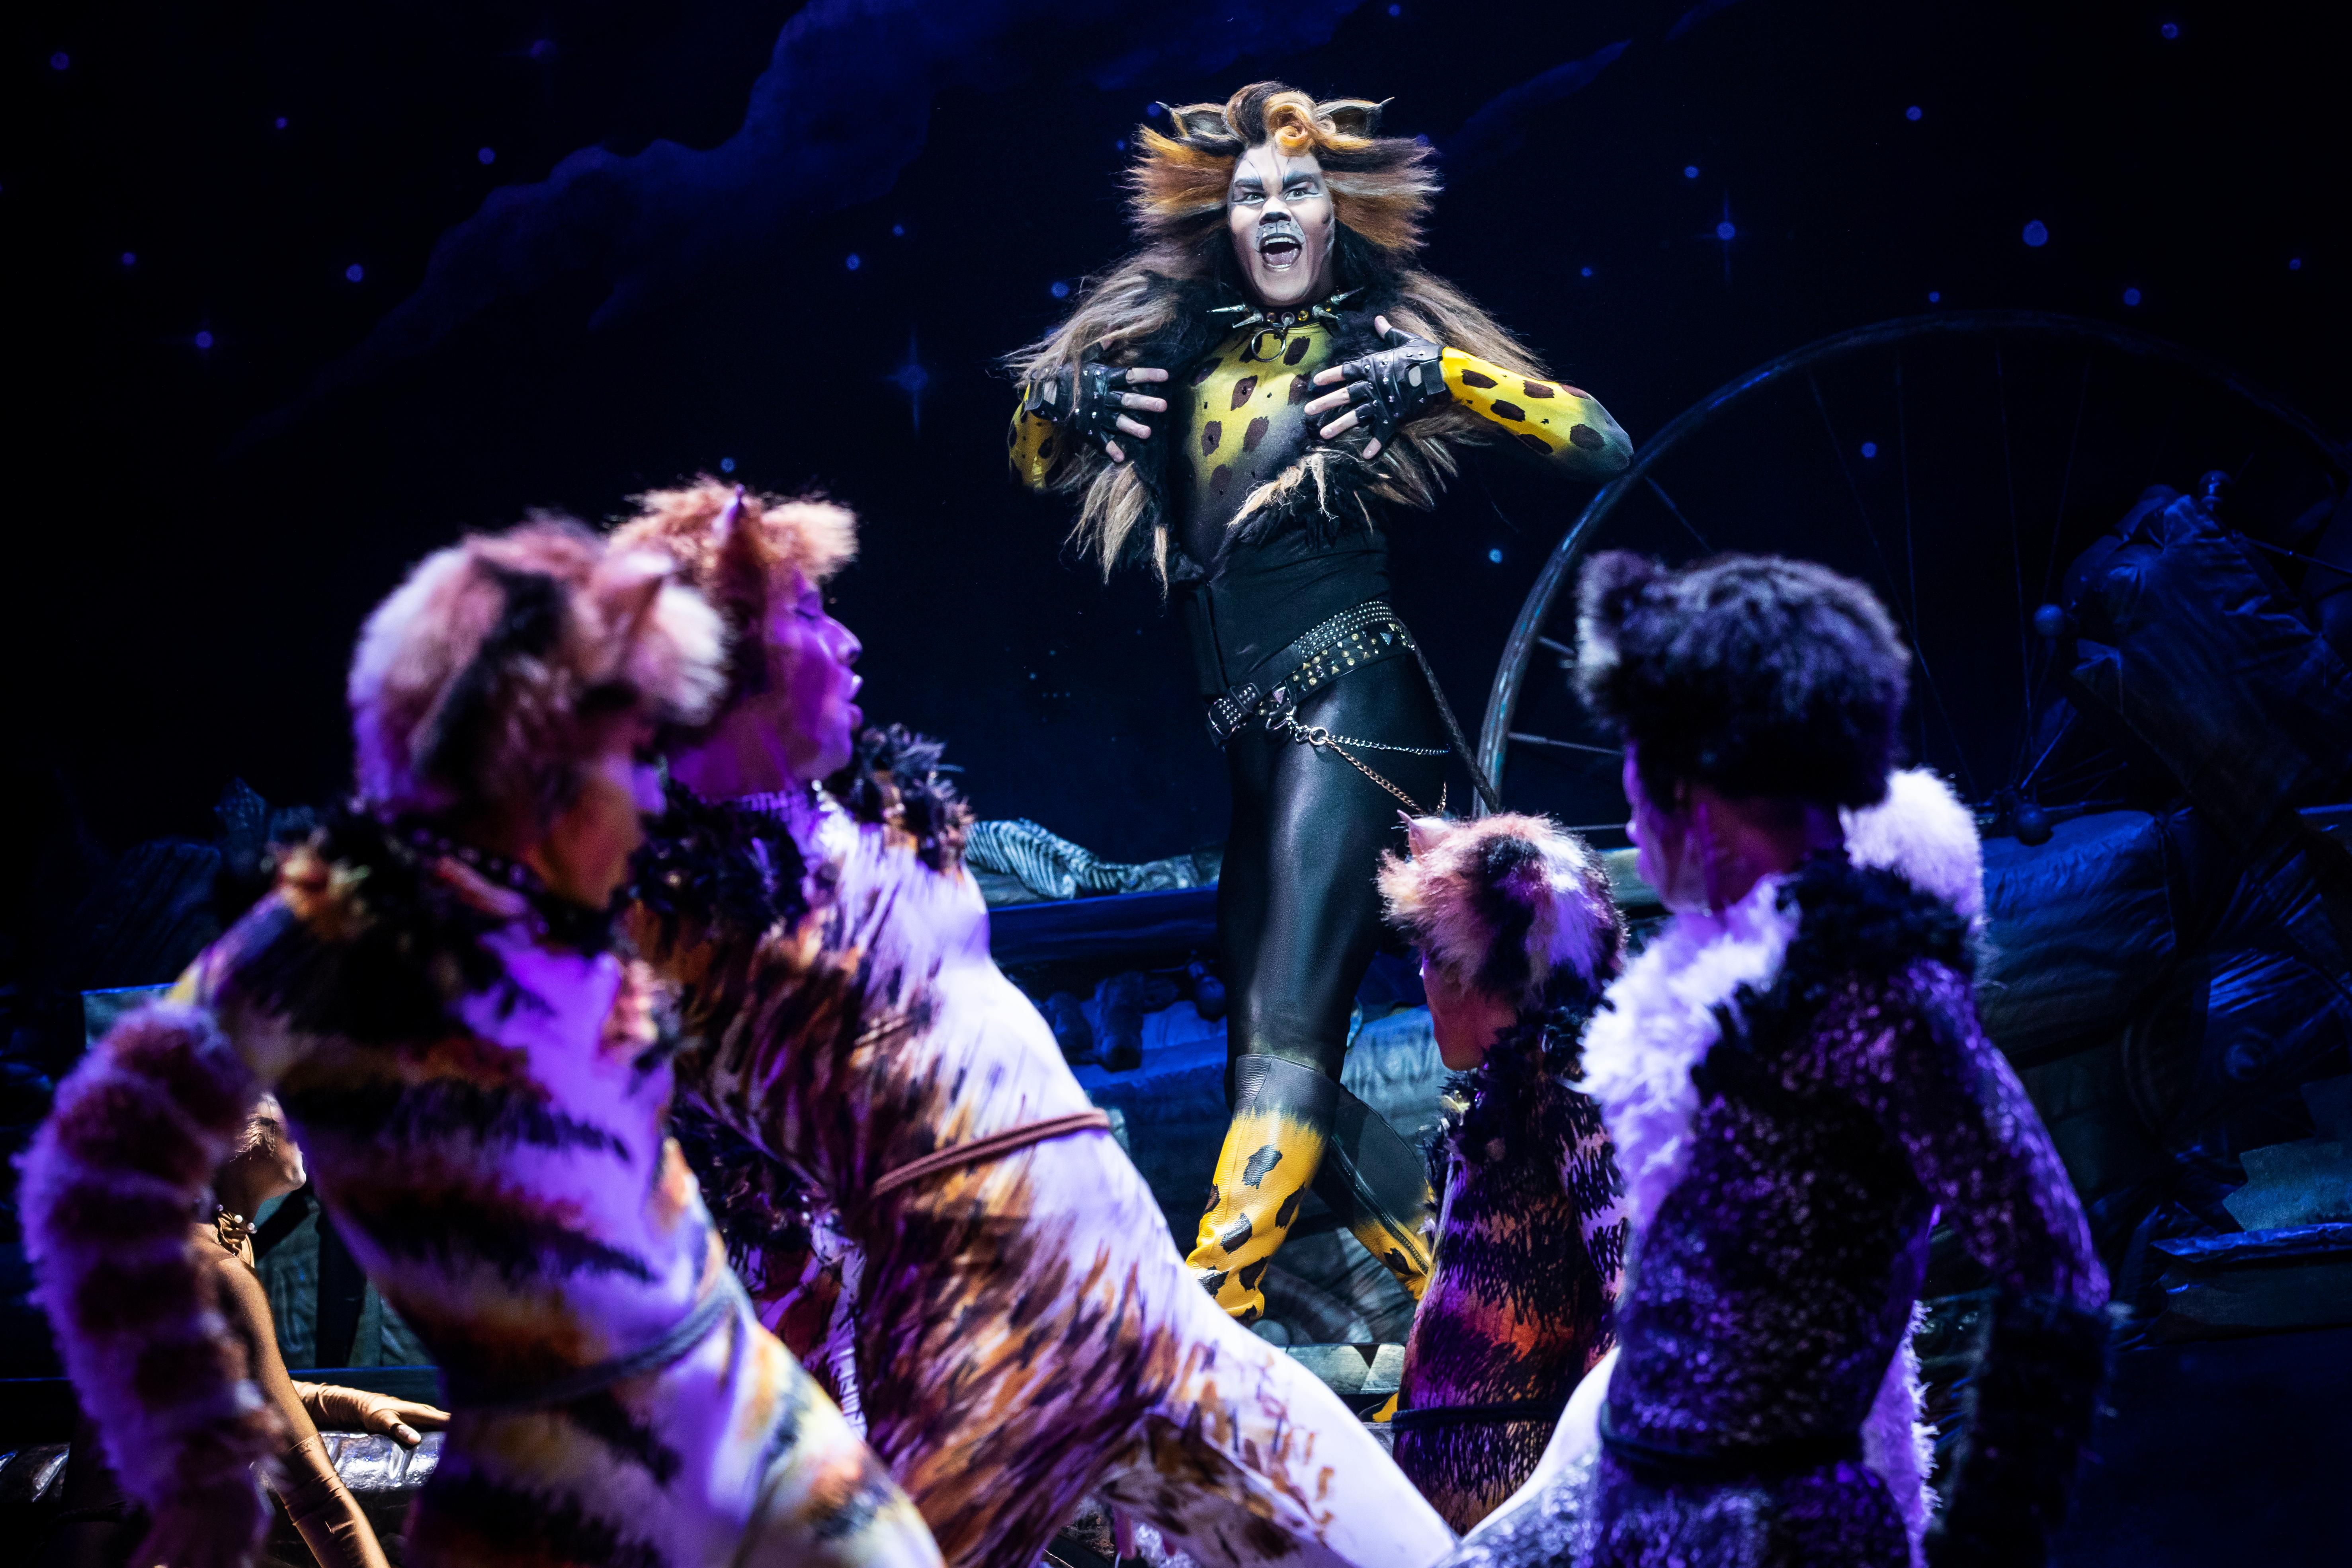 For eight performances only, the first ever Broadway revival of CATS is coming to the Paramount! The original Broadway production opened in 1982 at Broadway's Winter Garden Theater, where it ran for 7,485 performances and 18 years. Since its world premiere, CATS has been presented in more than 30 countries, has been translated into 15 languages, and has been seen by more than 73 million people worldwide. Starting from{&amp;nbsp;}Tuesday, March 26 to Sunday, March 31, CATS is gracing Seattle with their presence and<a  href=&quot;https://seattle.broadway.com/shows/cats-baa/&quot; target=&quot;_blank&quot;>{&amp;nbsp;}you can grab your tickets, starting at $40</a>. (Image courtesy of Broadway at the Paramount).